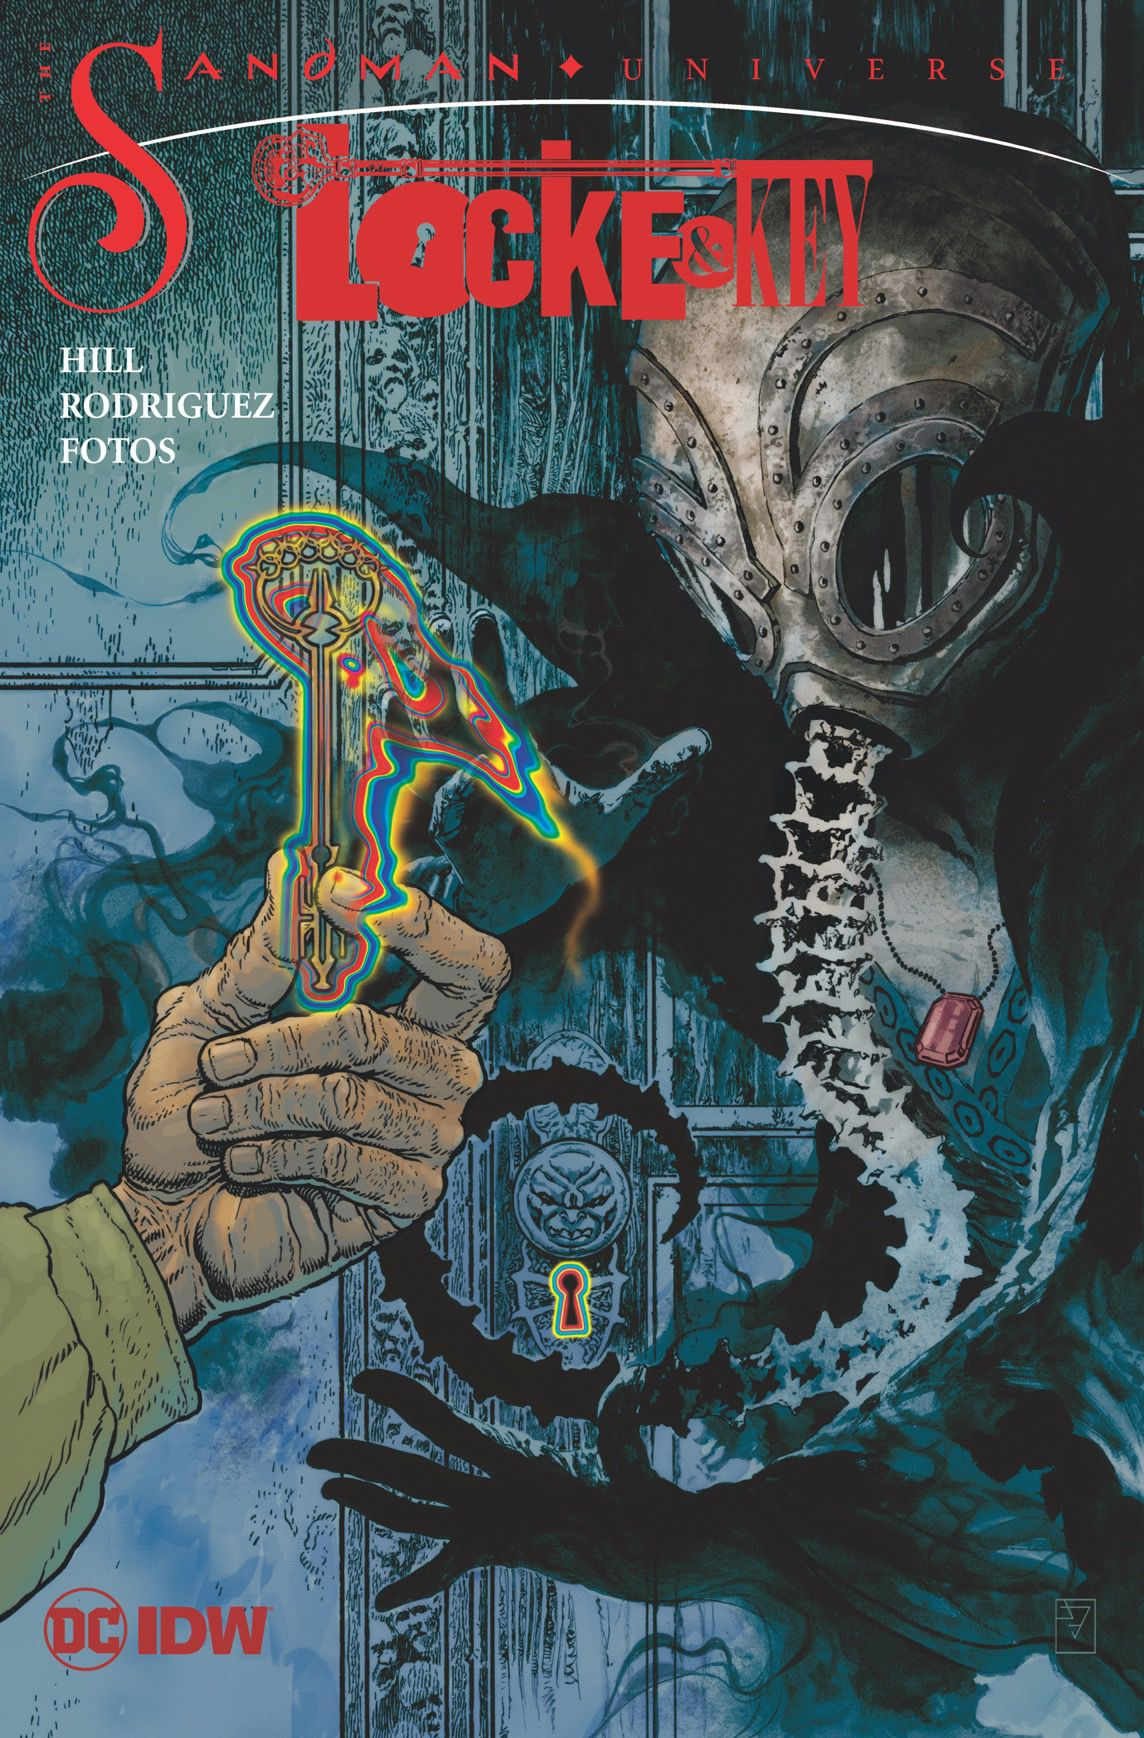 A hand holds an otherworldly key up to the kin gof Dreams on the cover of Locke & Key: Hell and Gone, from DC Comics and IDW Publishing.